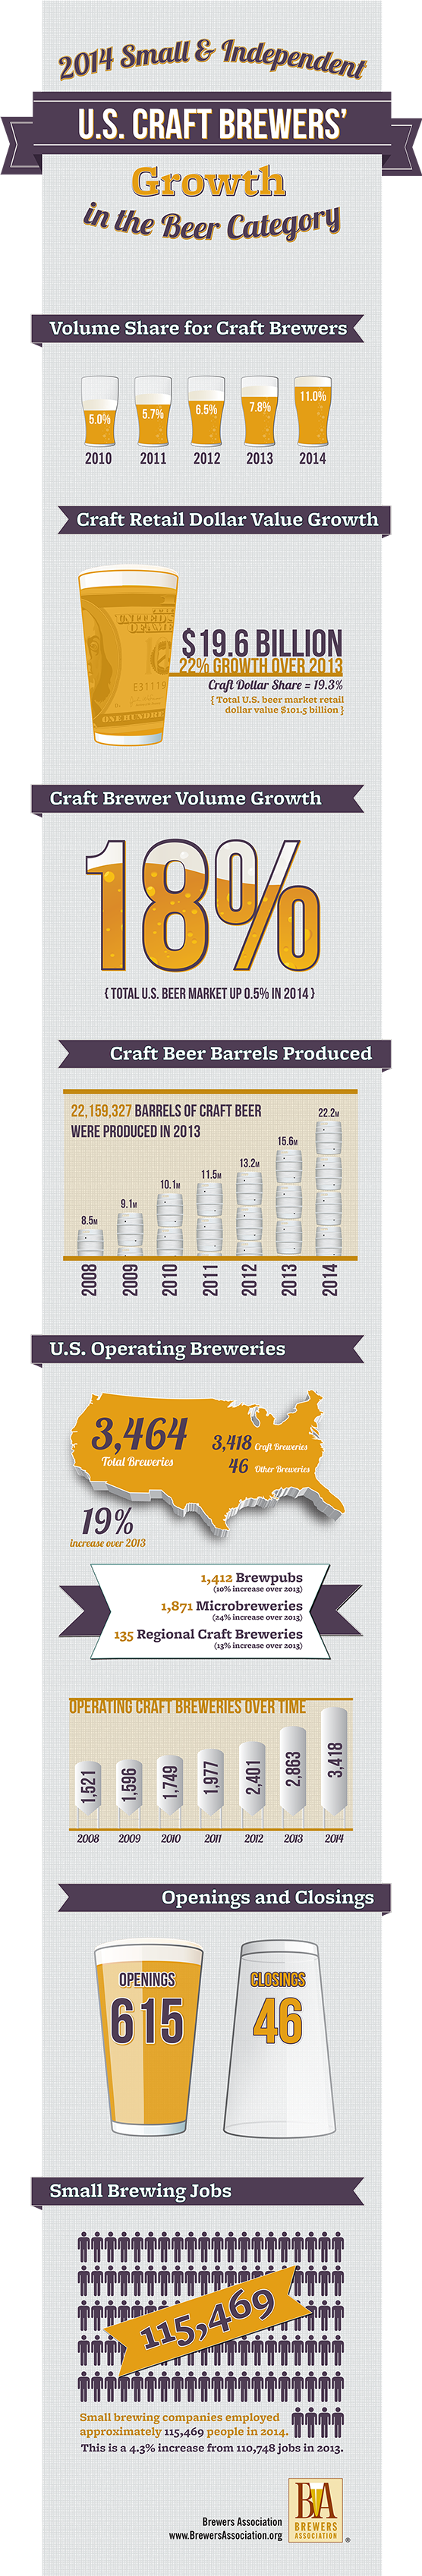 Craft beer growth in 2014 (Brewers Association)